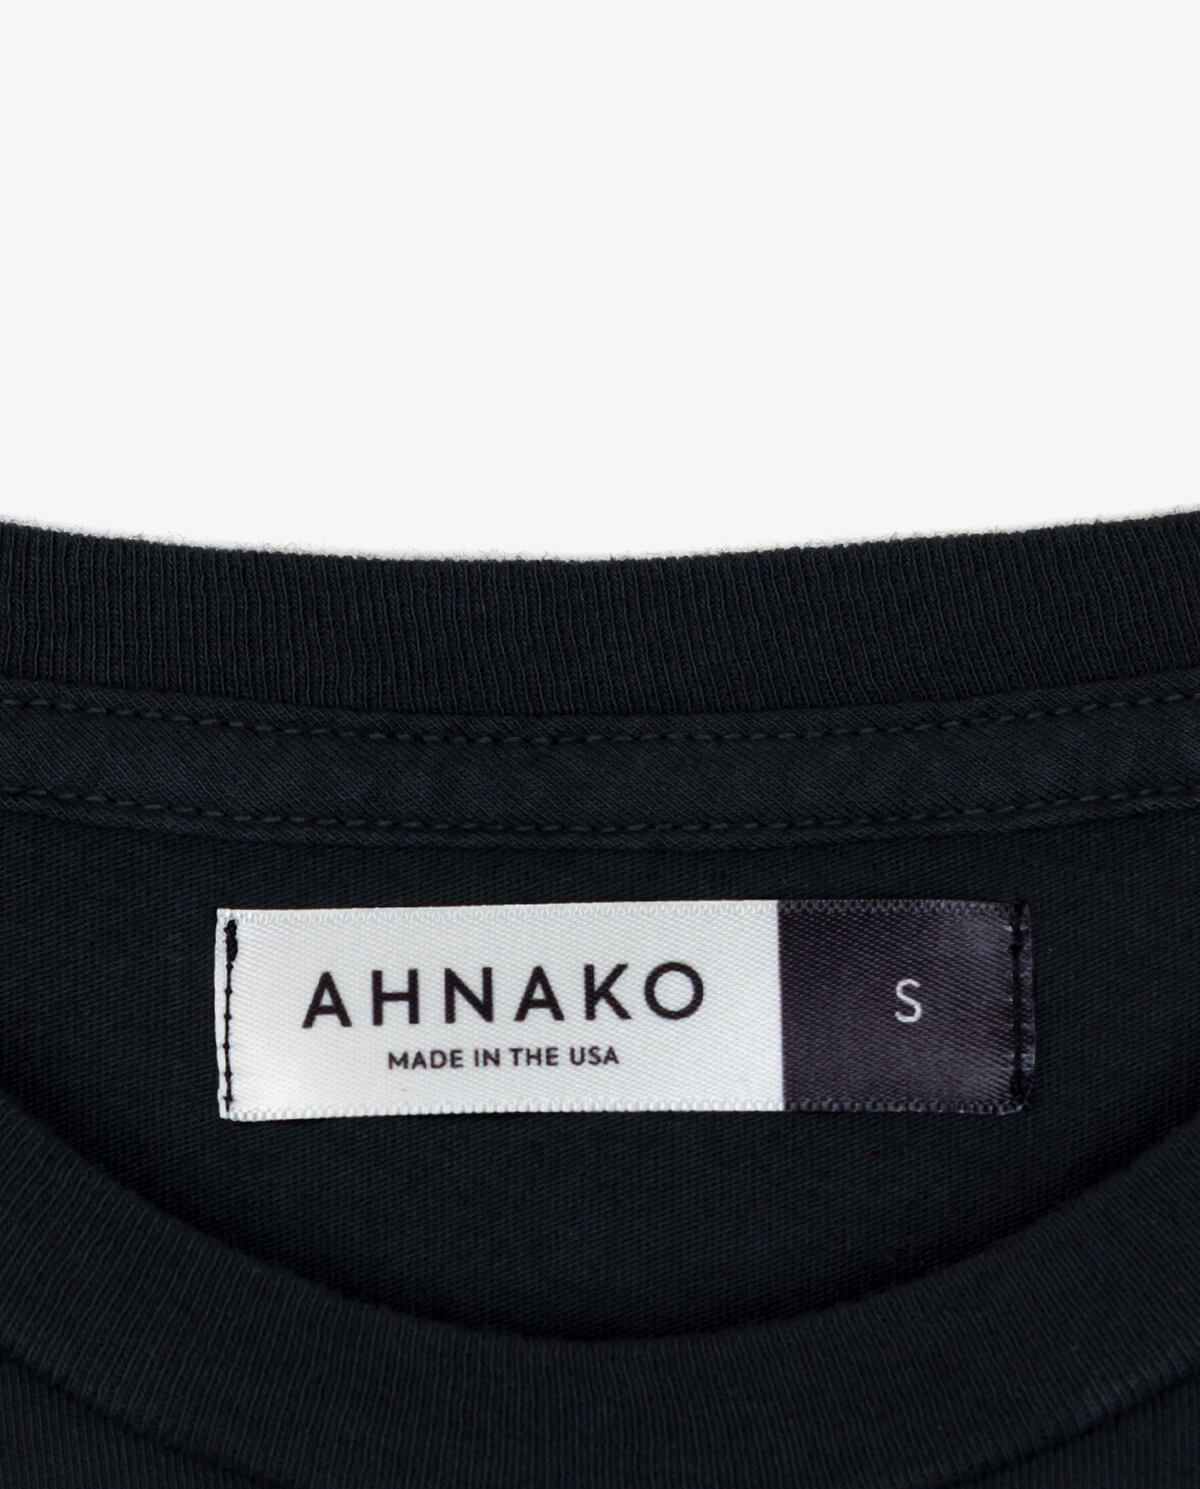 "Ahnako Women's Lowercase ""a"" - Vintage Black T-shirt - Clothing Tag"